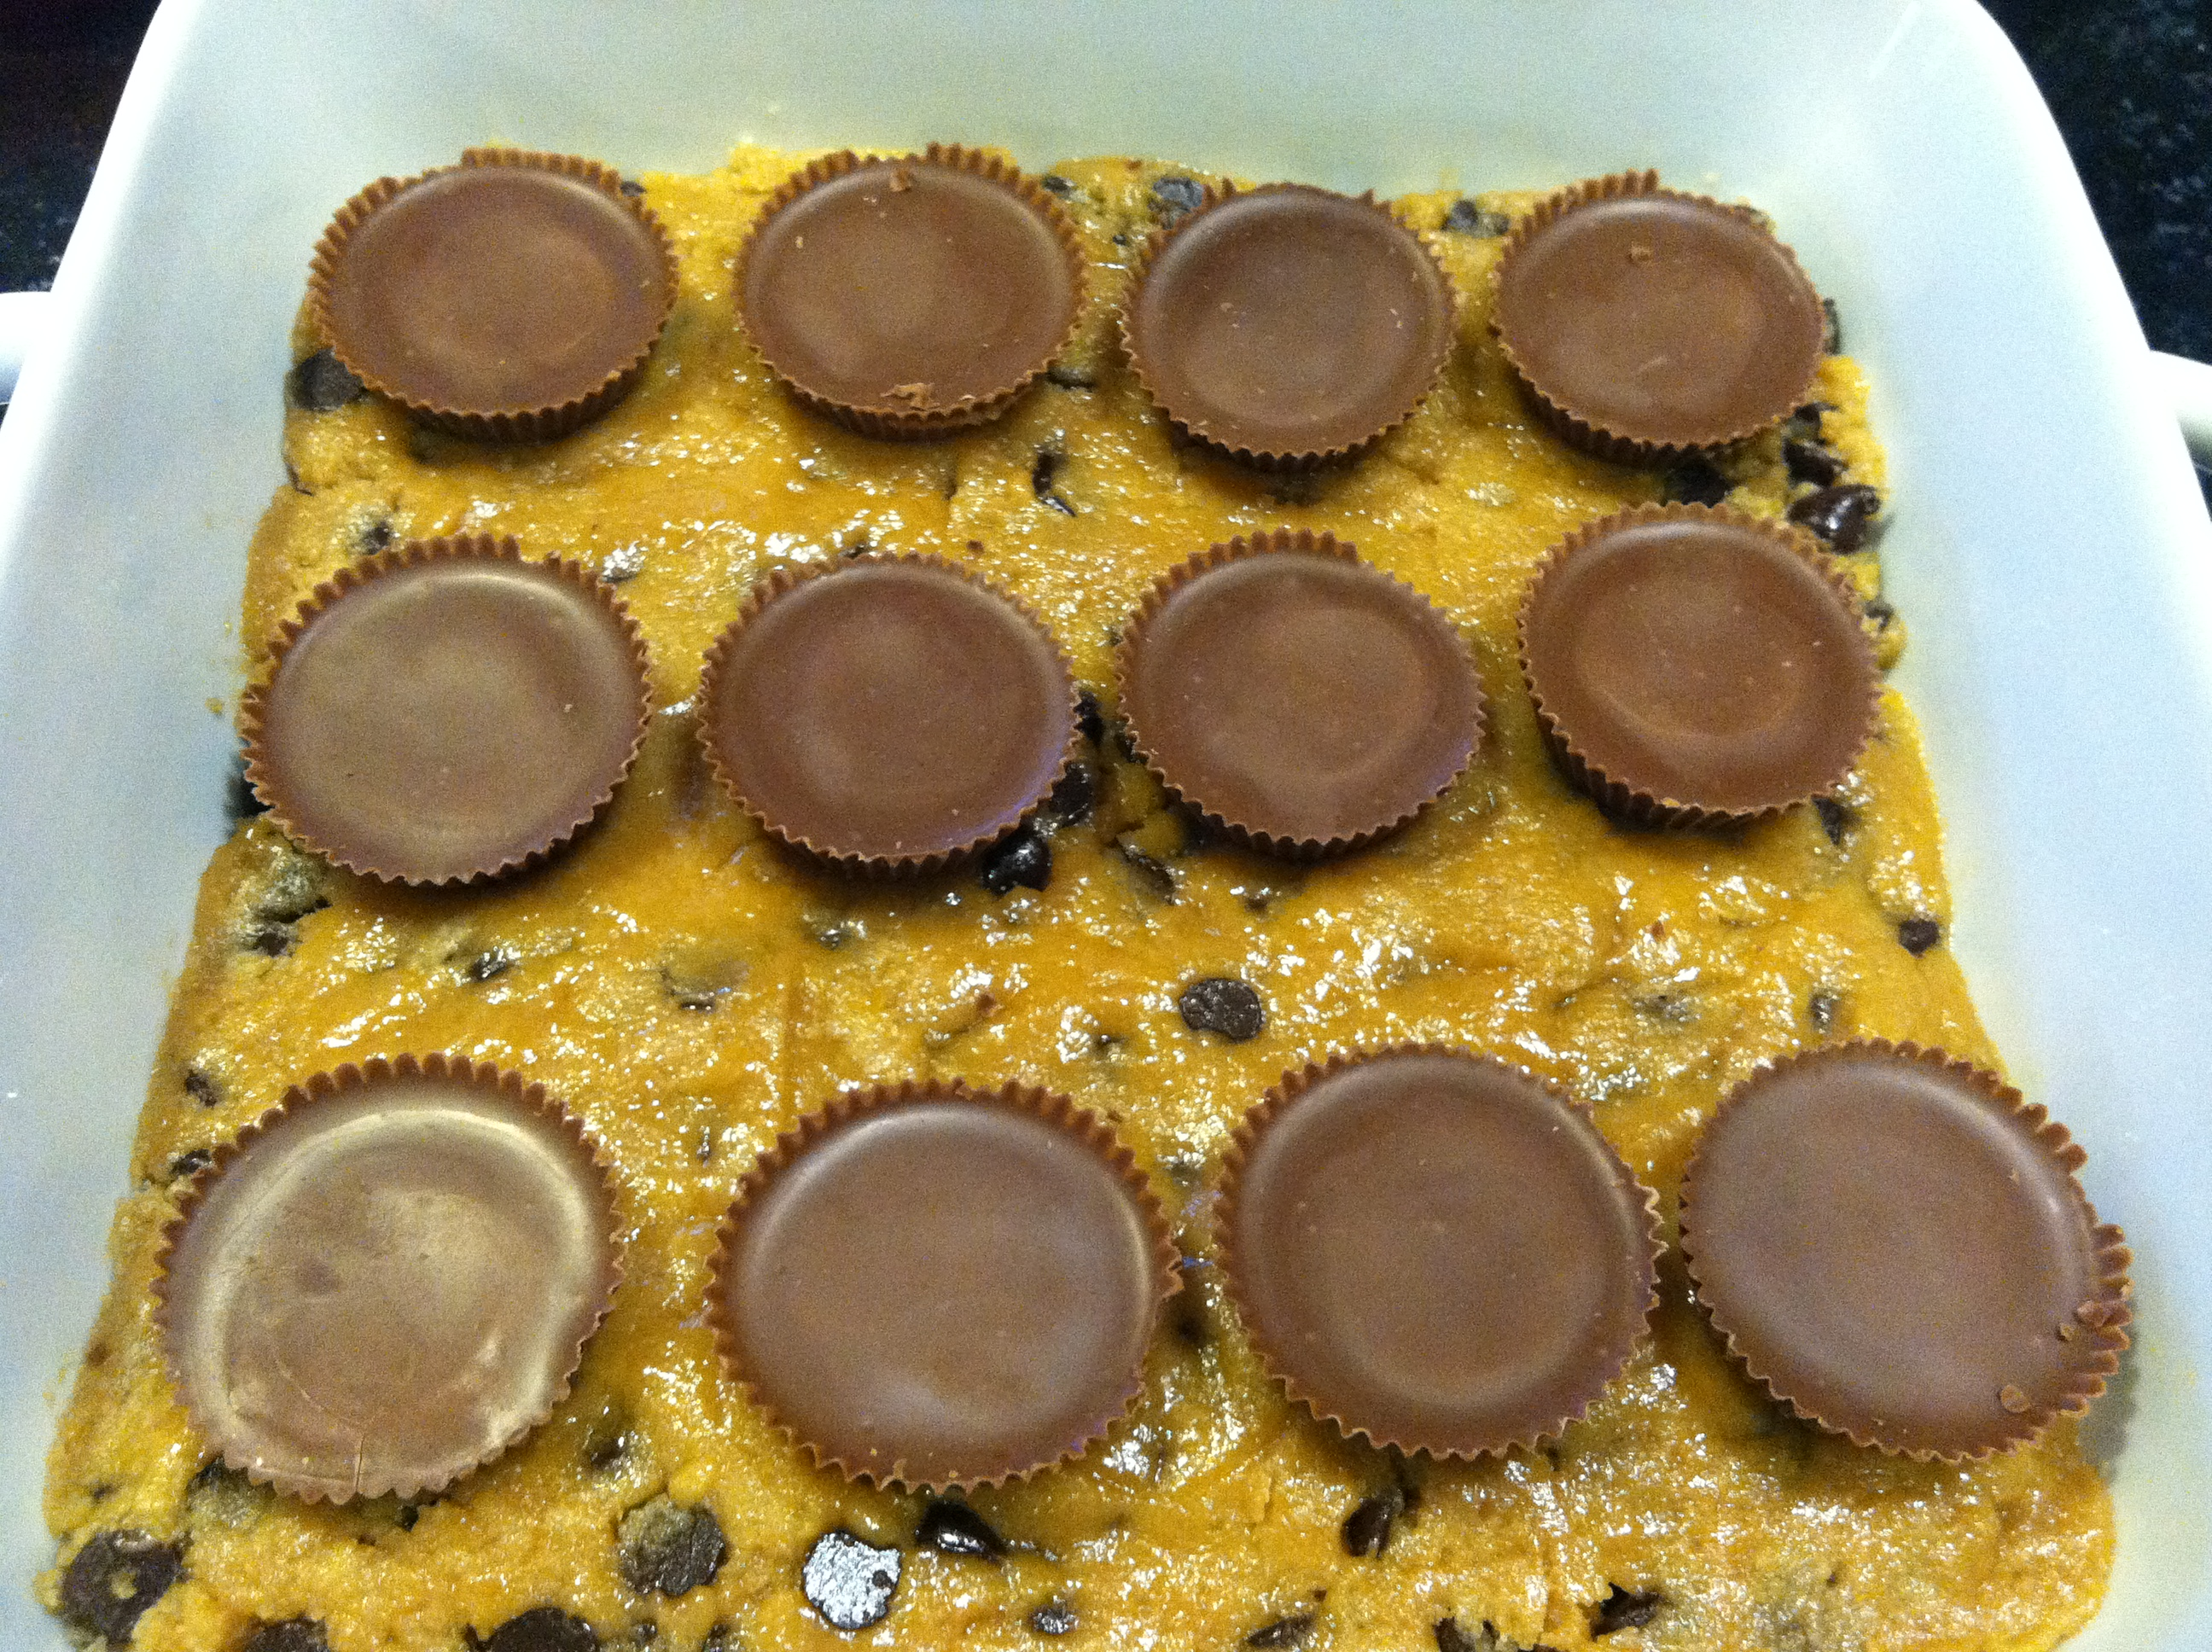 ... sugar cookie dough (or use boxed mix) and place over Reese's cups